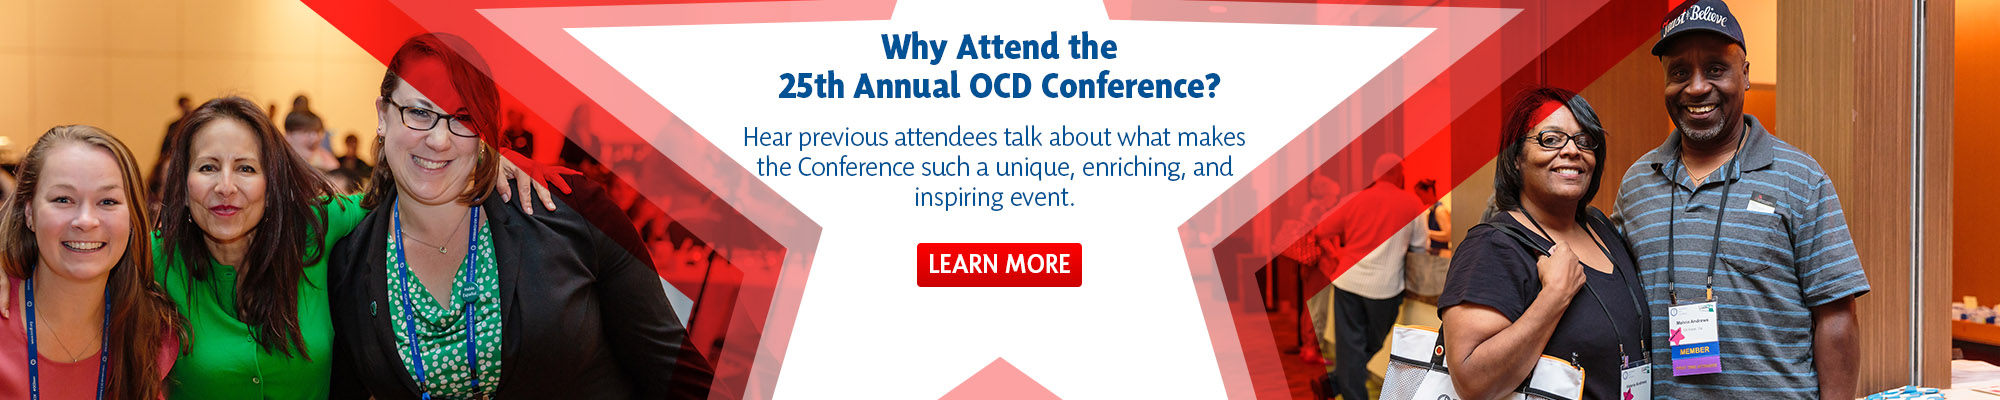 Why Attend the 25th Annual OCD Conference